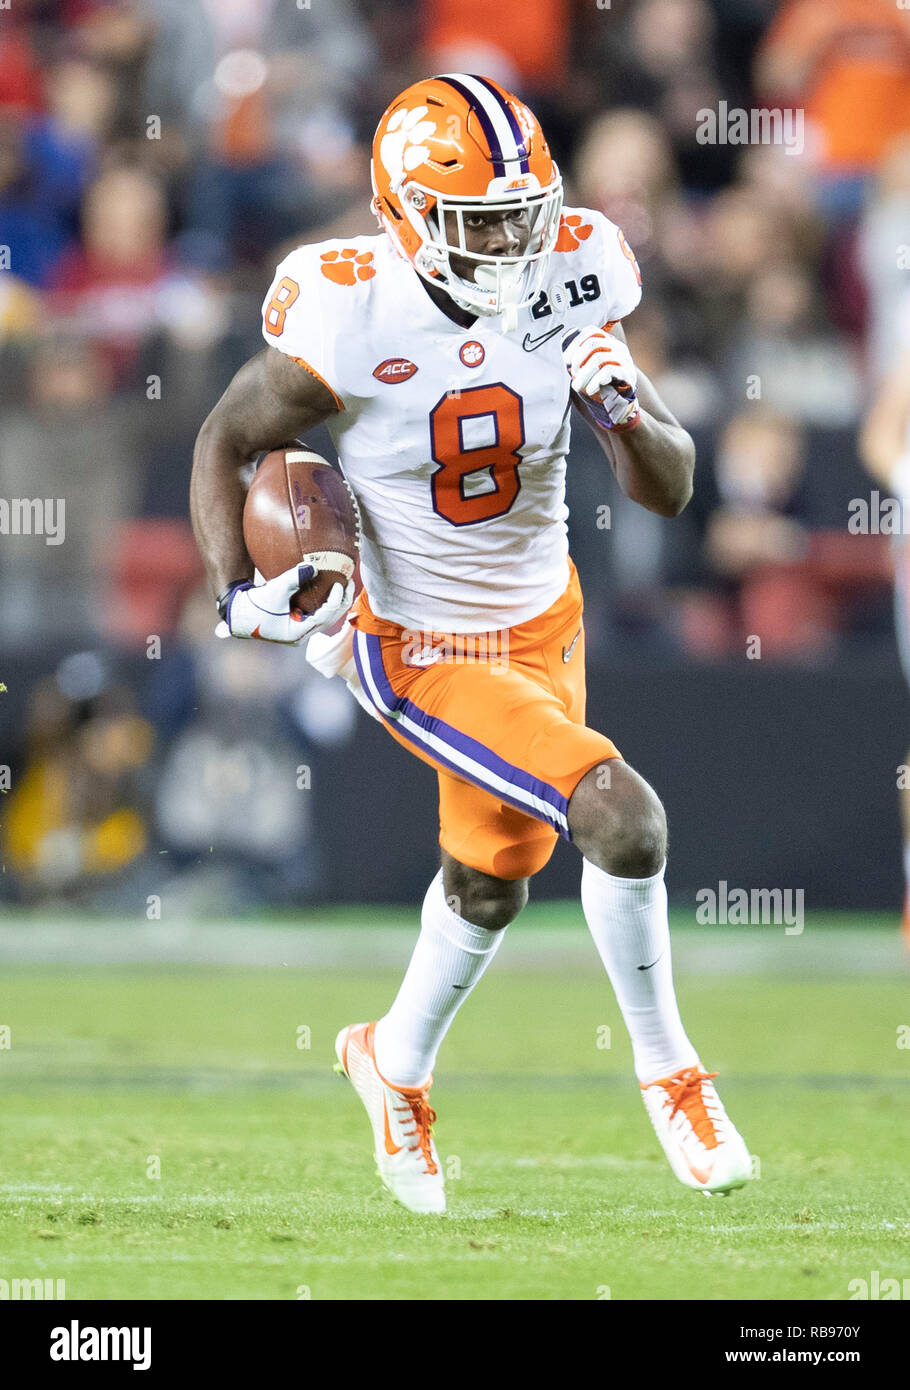 Santa Clara, California, USA. 07th Jan, 2019. Clemson wide receiver Justyn Ross (8) runs with the ball for a touchdown during College Football Playoff National Championship game action between the Clemson Tigers and Alabama Crimson Tide at Levi's Stadium in Santa Clara, California. Clemson defeated Alabama 44-16. John Mersits/CSM/Alamy Live News - Stock Image